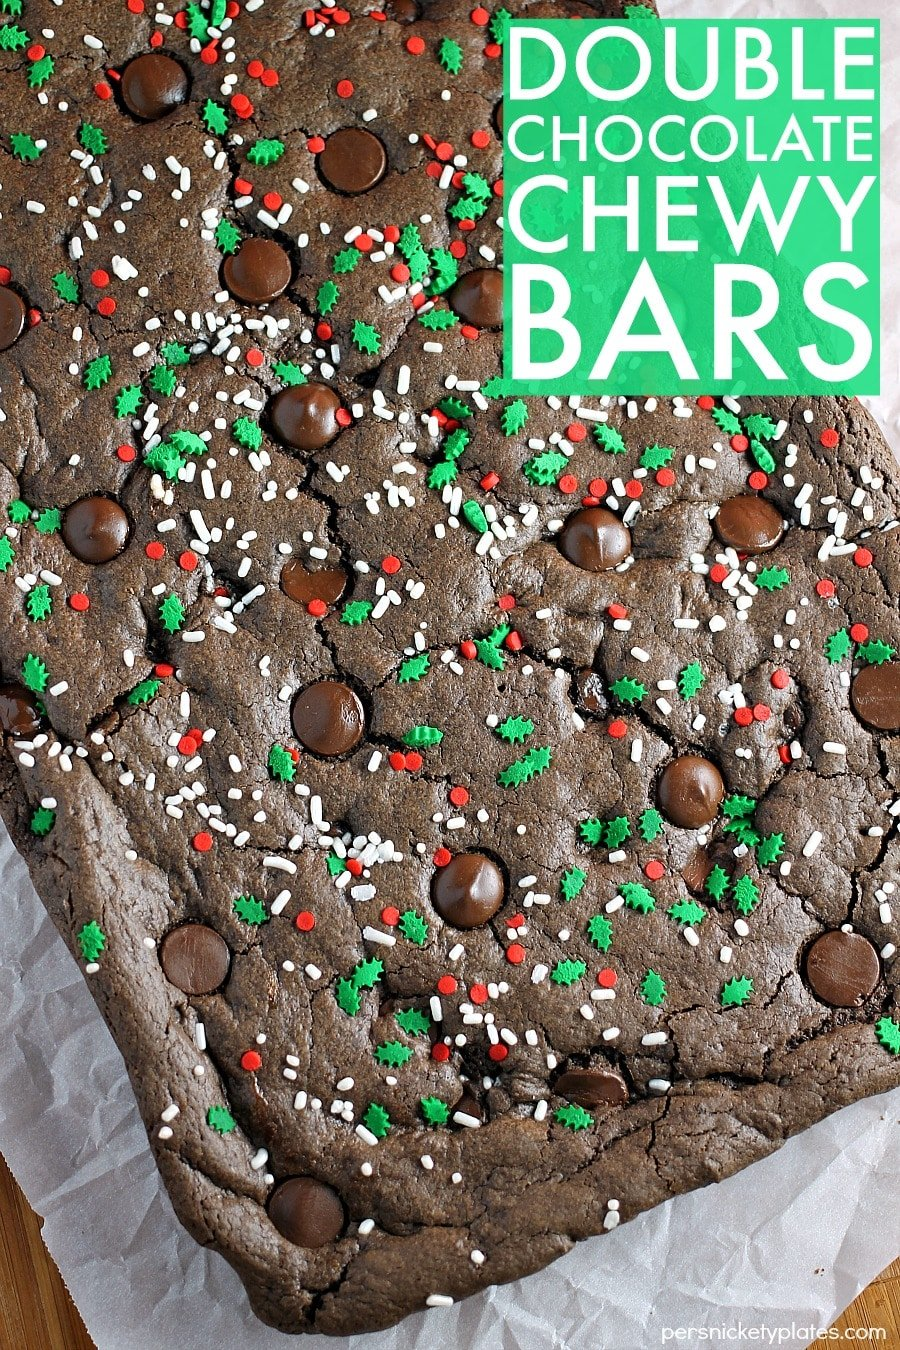 Double Chocolate Chewy Bars are semi-homemade and really simple - they start with a cake mix base and are dressed up with holiday sprinkles. Only five ingredients! | www.persnicketyplates.com